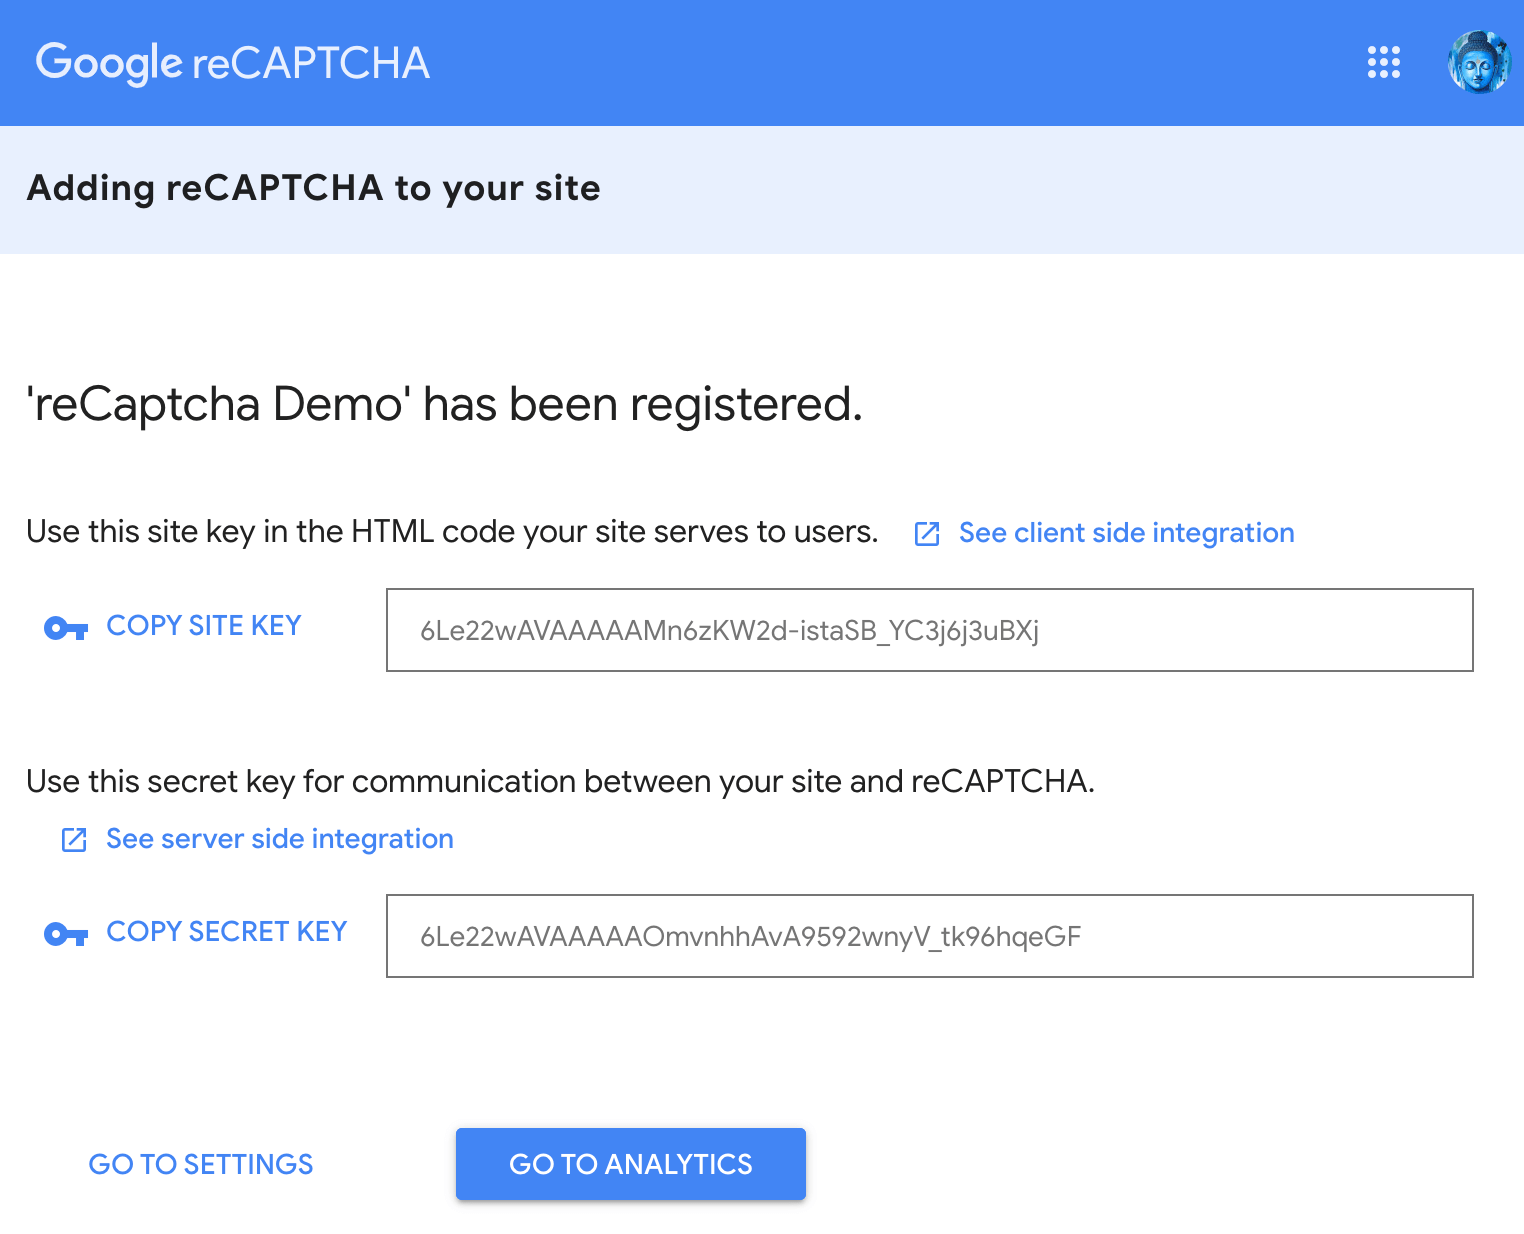 Get Google reCaptcha Site and Secret Key